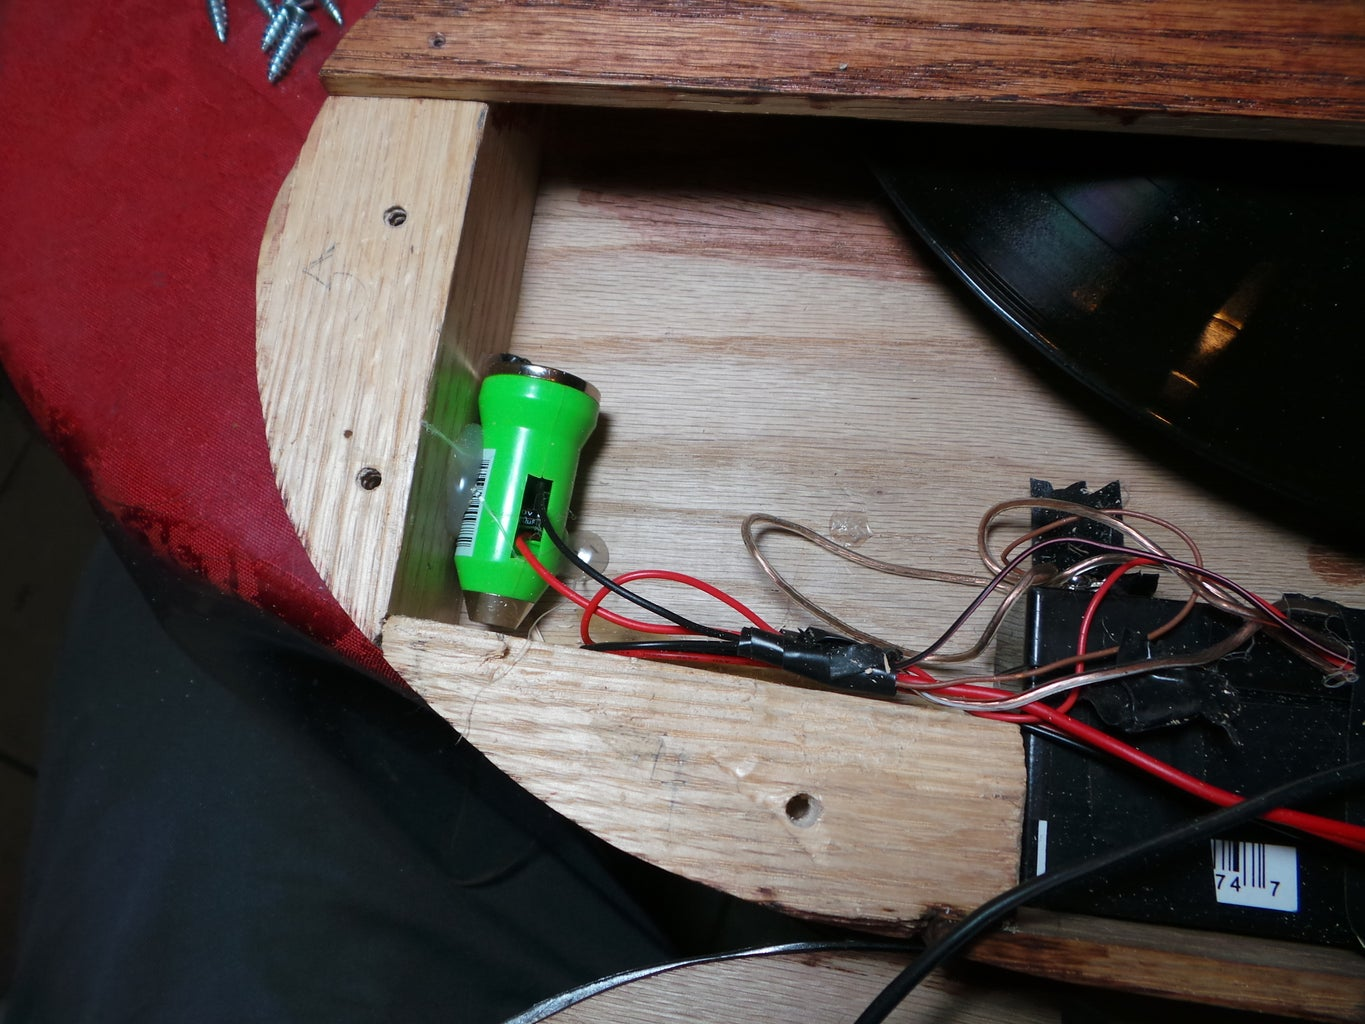 Sanding, Cutting, Wiring, and Staining